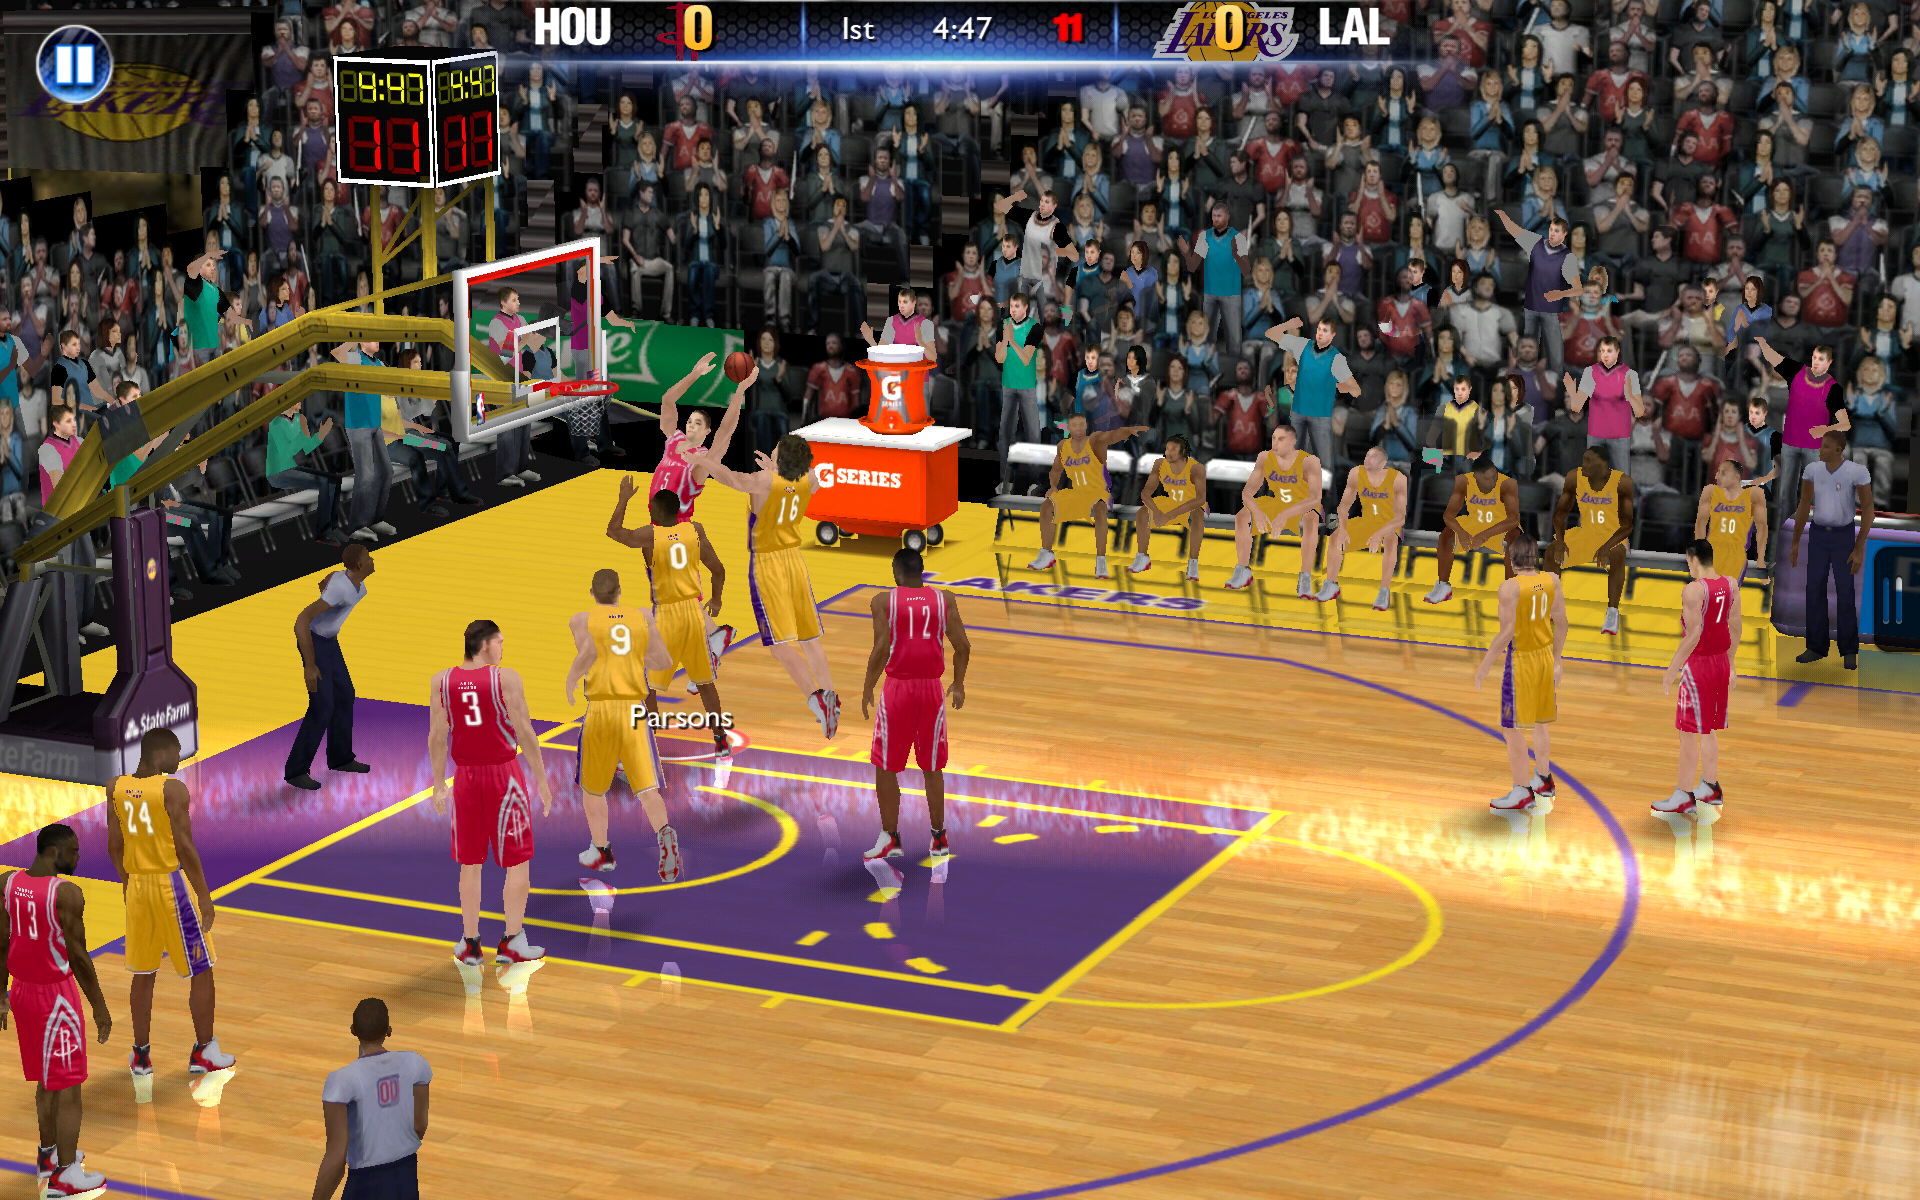 nba 2k14 apk download for pc